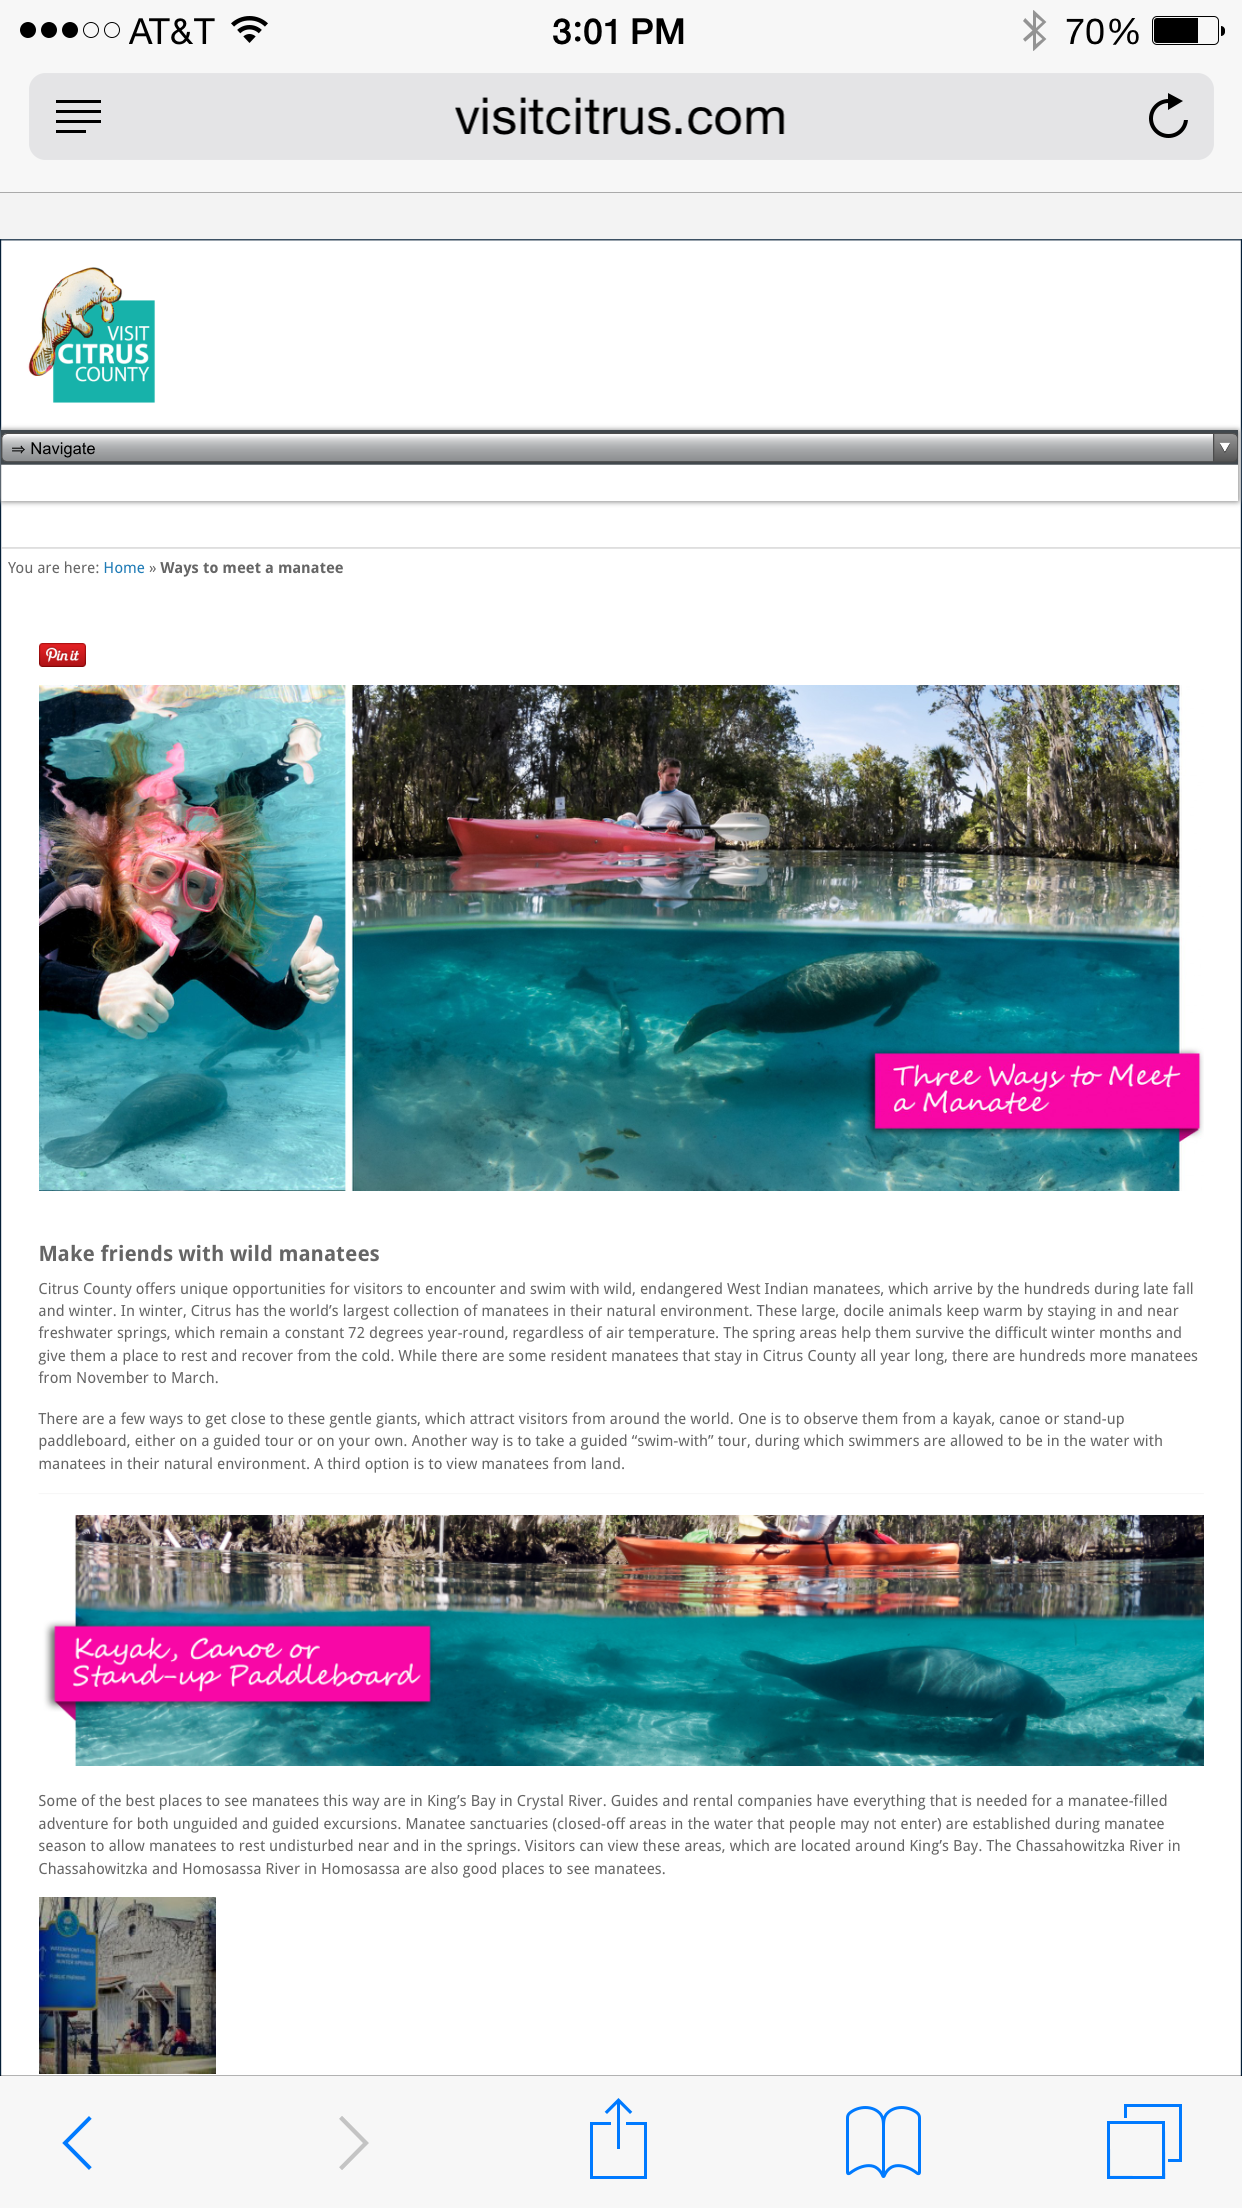 VisitCitrus.com, meet a manatee, screenshot, photos by Carol Grant,